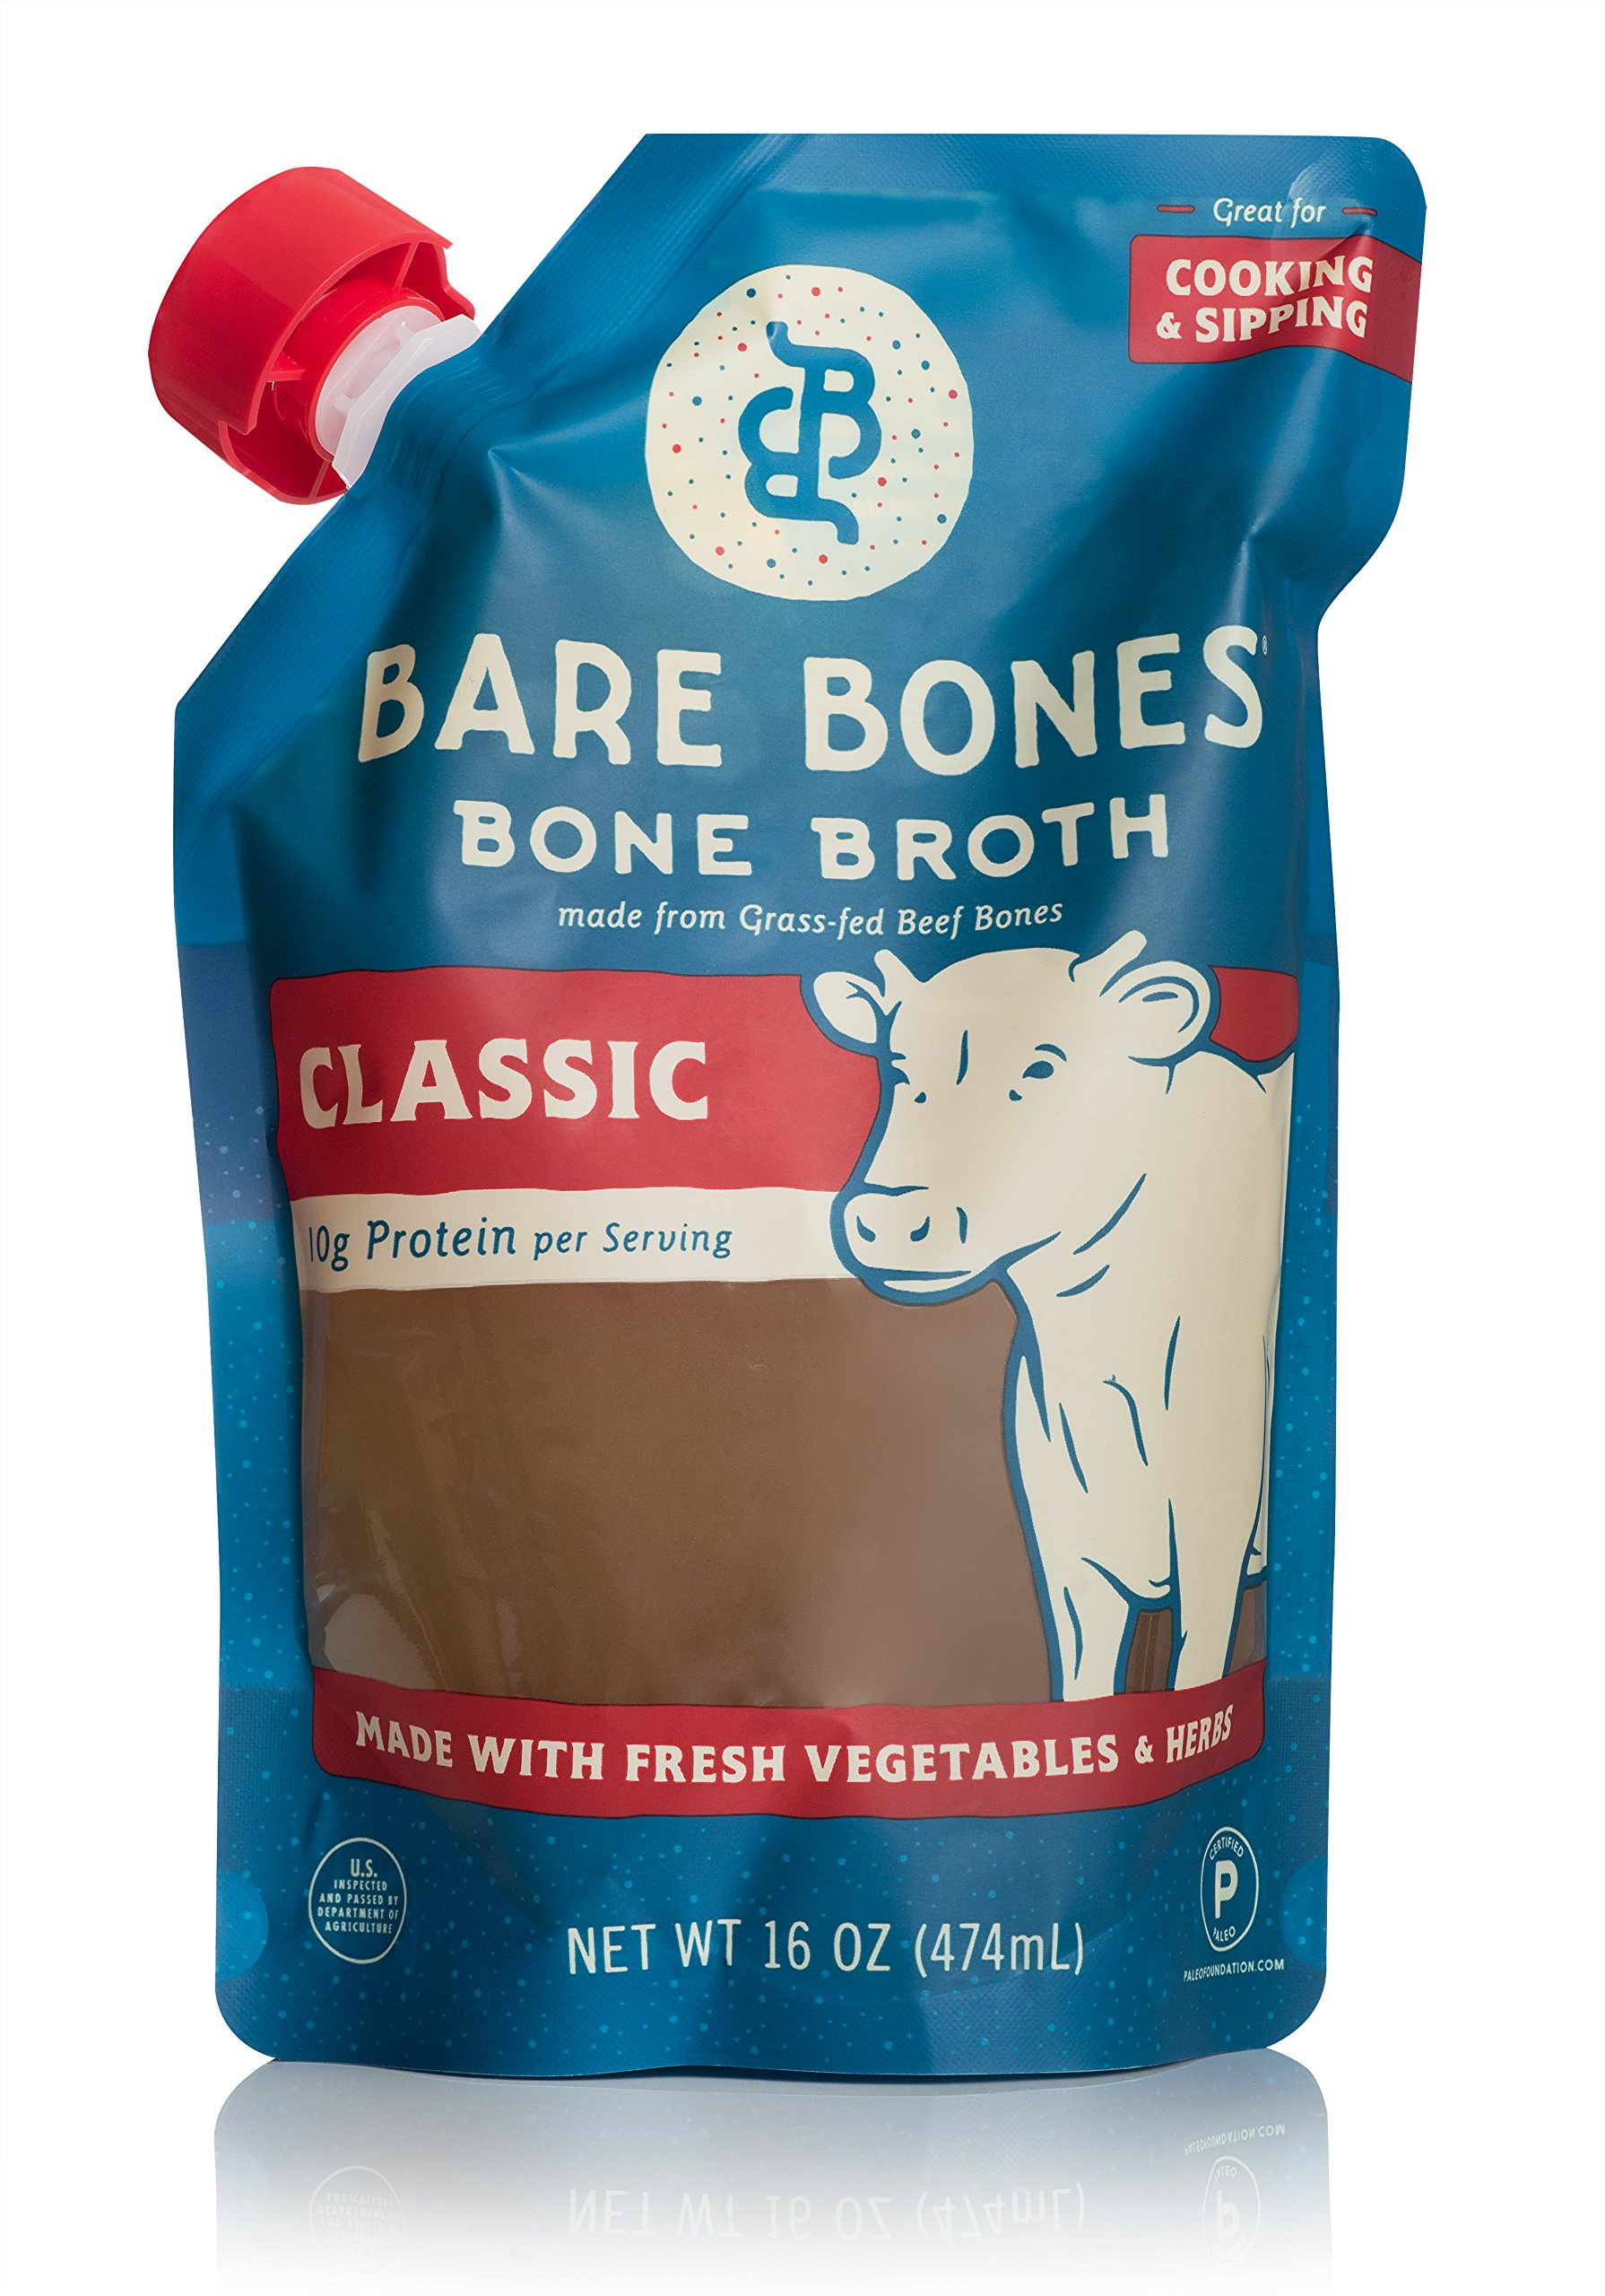 Bare Bones Beef Bone Broth for Cooking and Sipping, 100% Grass-Fed, Organic, Protein and Collagen Rich, Keto Friendly, 16 oz Pouch